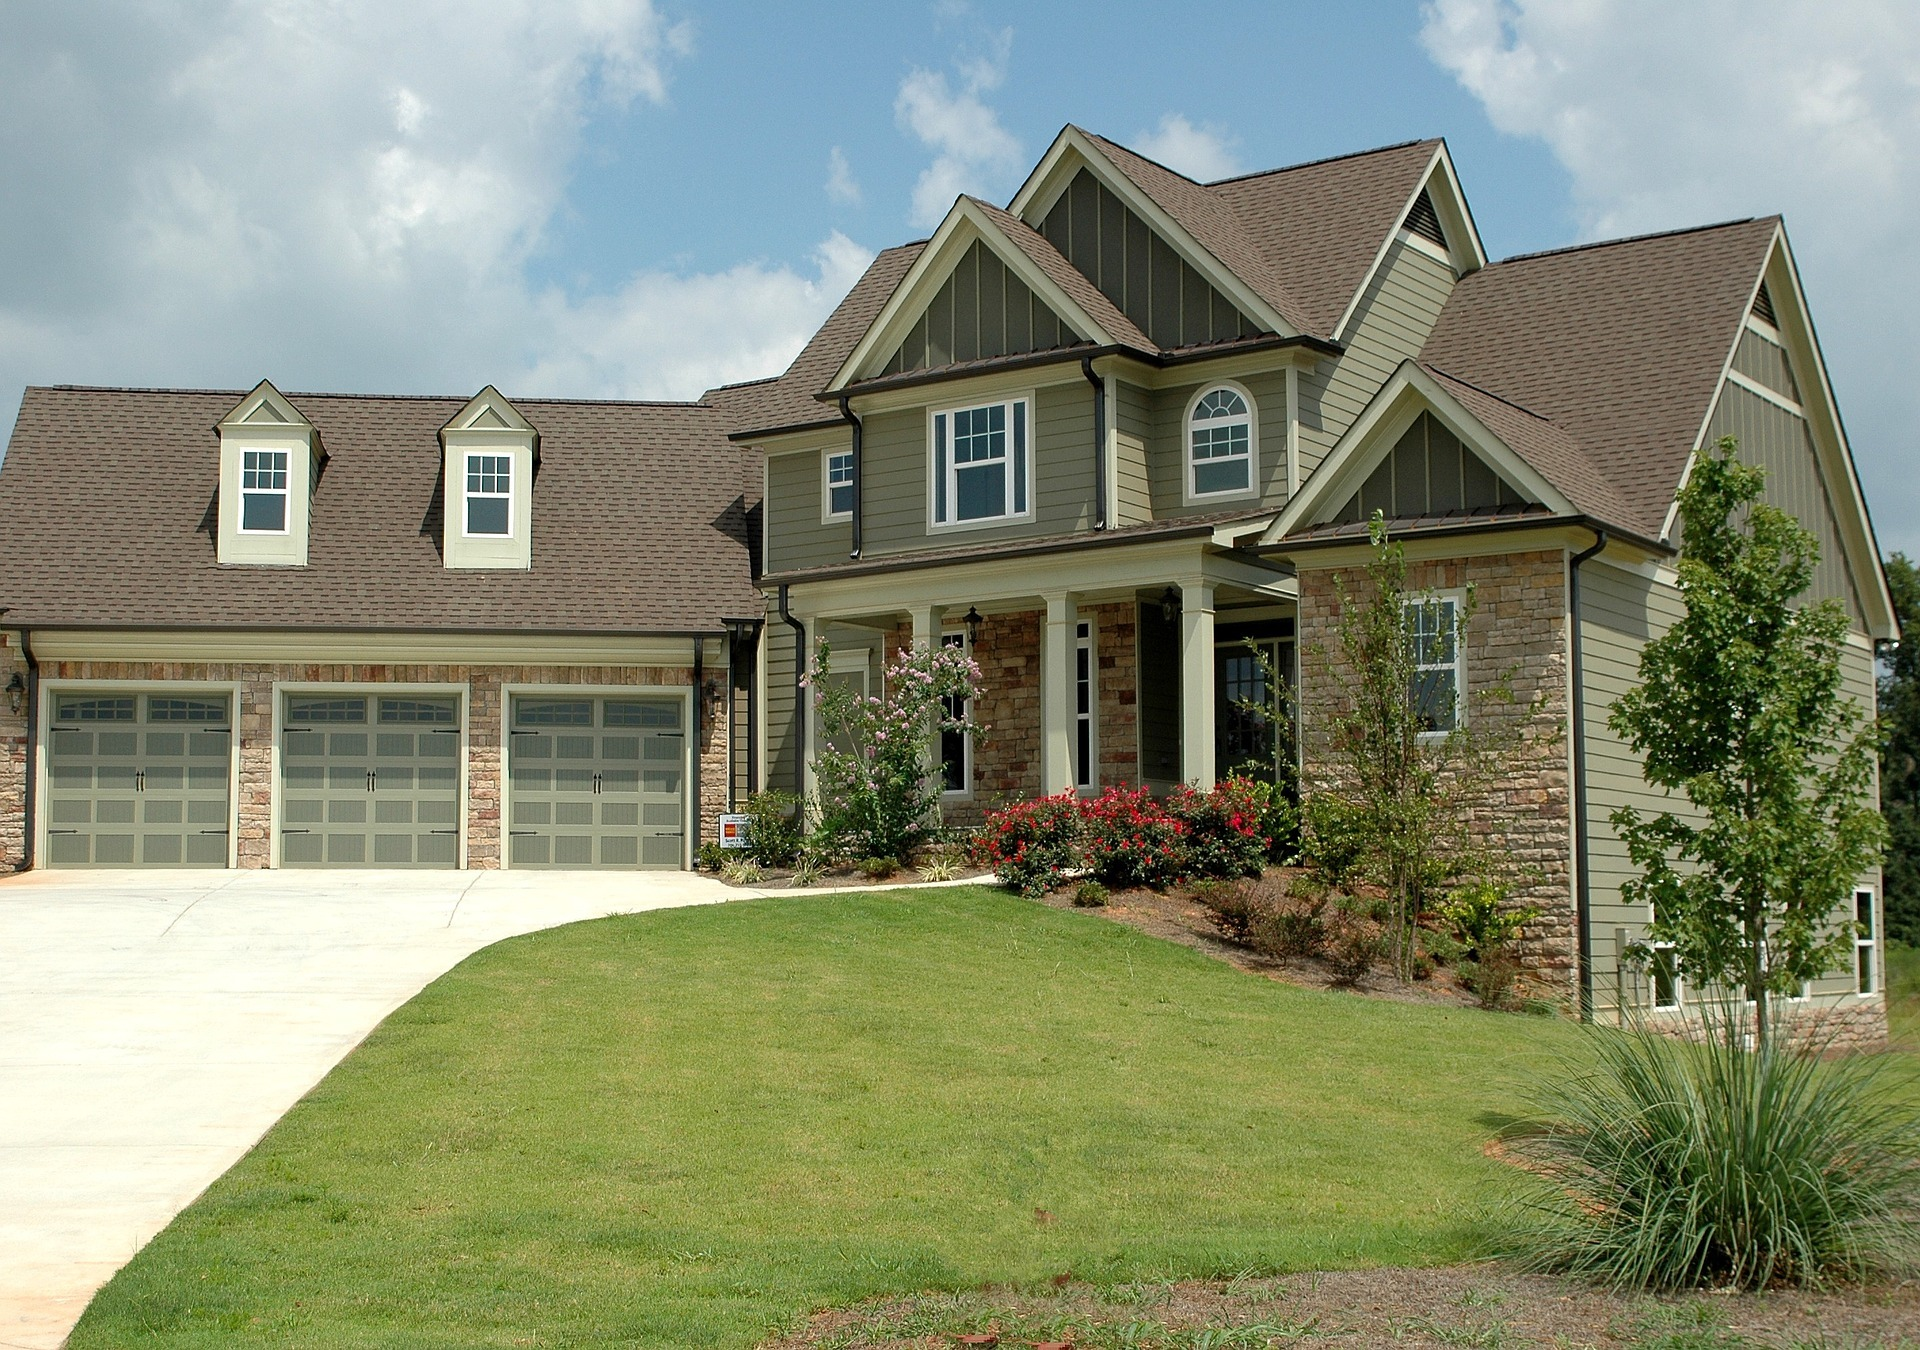 3 Car Garage Homes For Sale Idaho Homes For Sale By